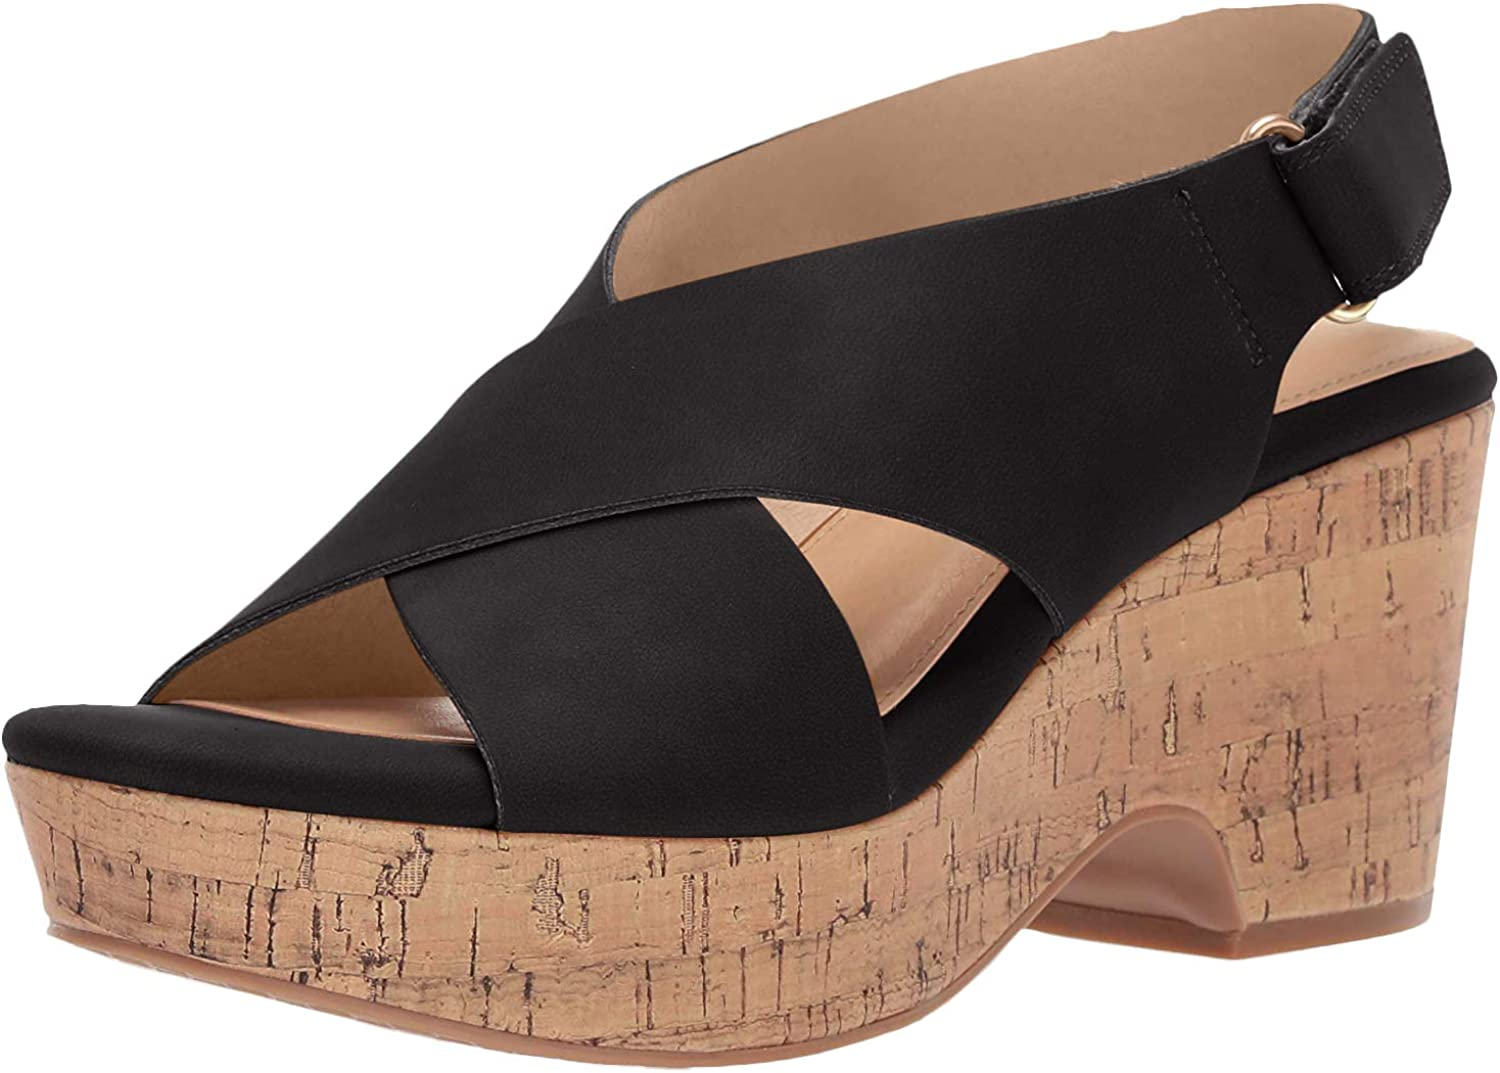 CL by Chinese Laundry Women's Chosen Wedge Sandal